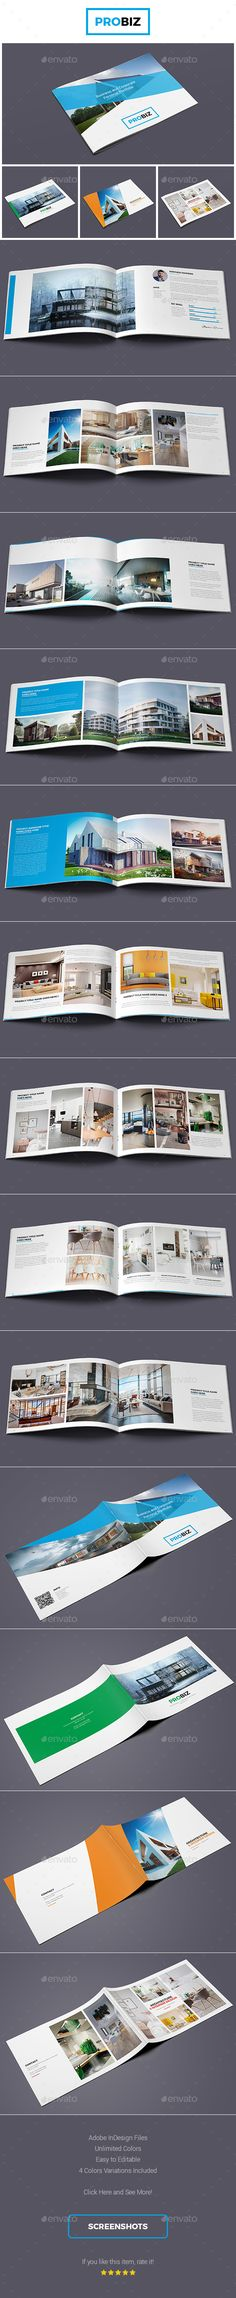 Minimal Fashion Photography Portfolio Brochure Template Indesign